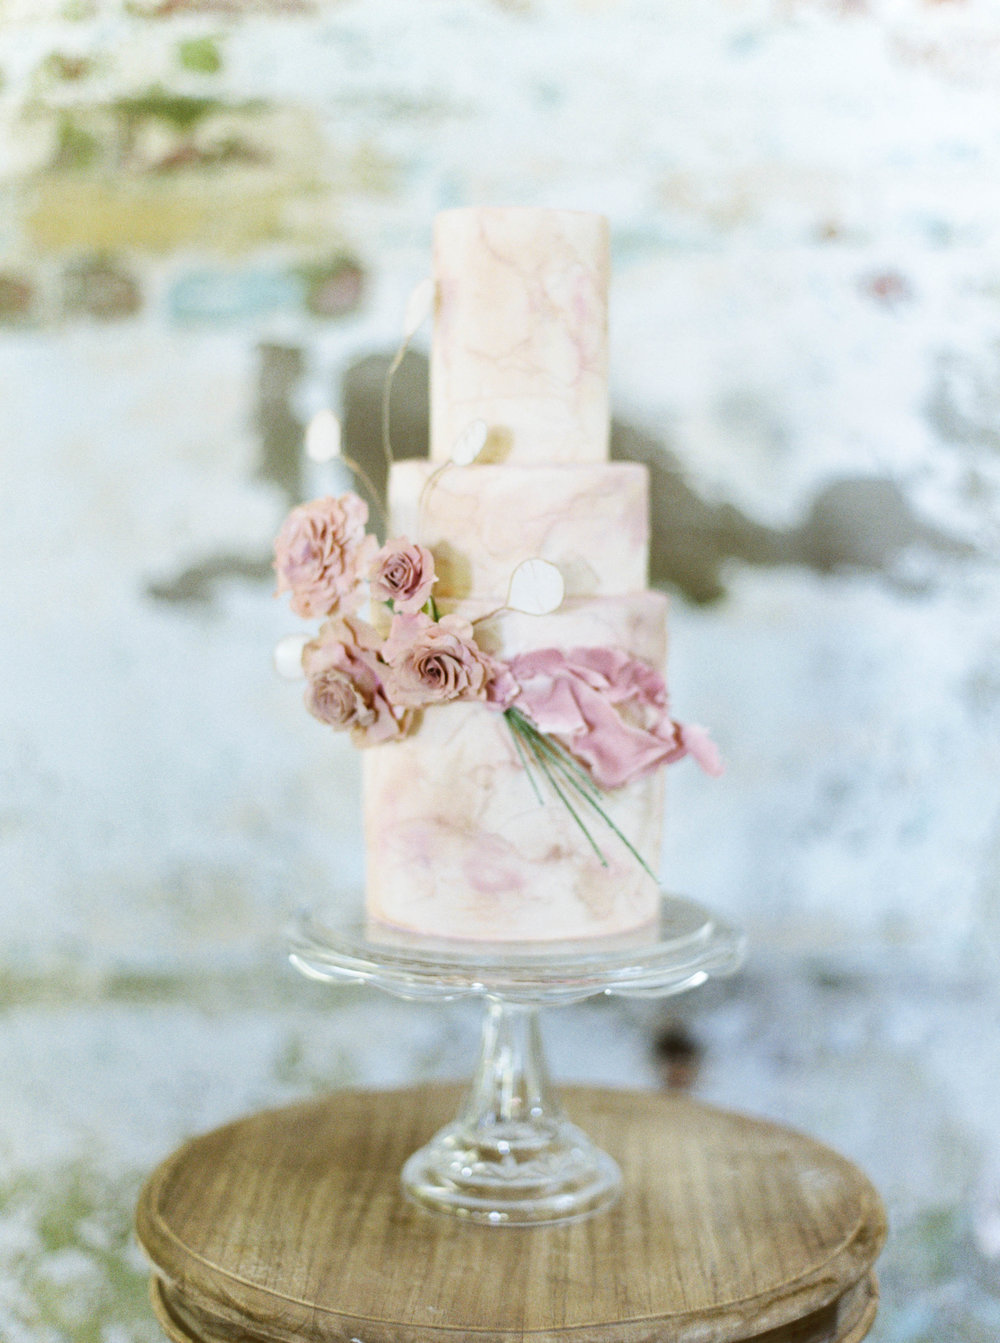 Cake Flower Houston Wedding Details.jpg